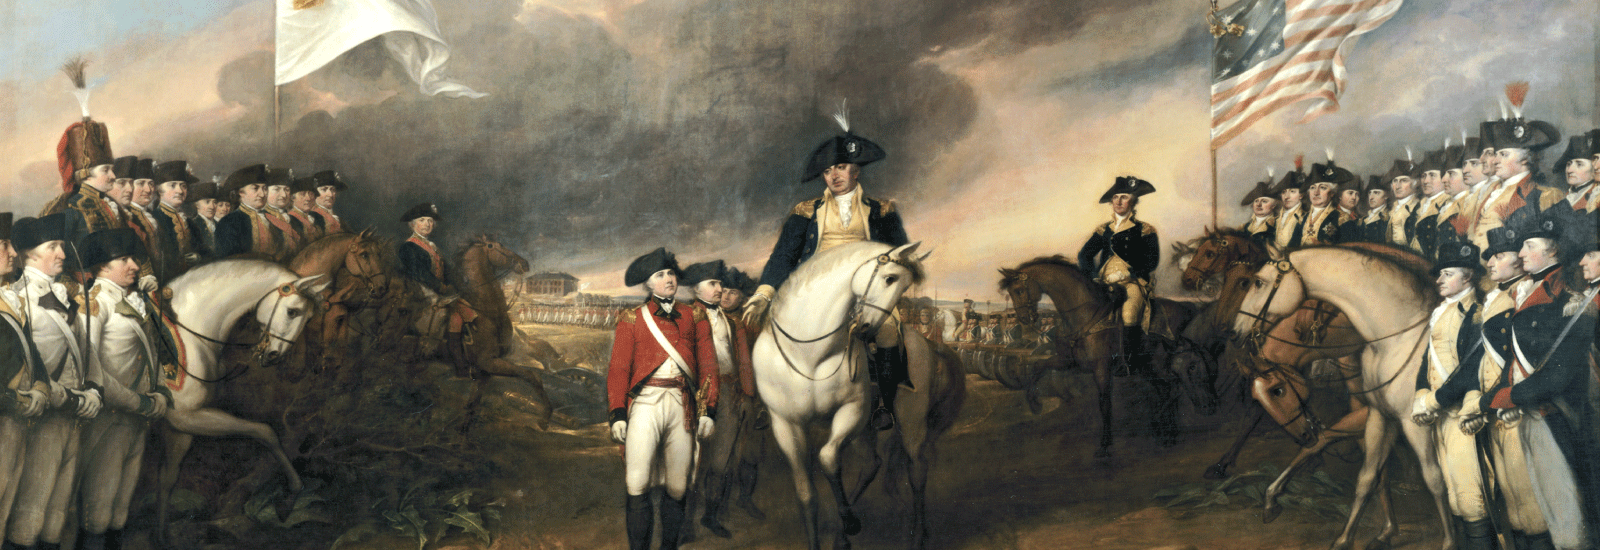 The National Guard During the American Revolution